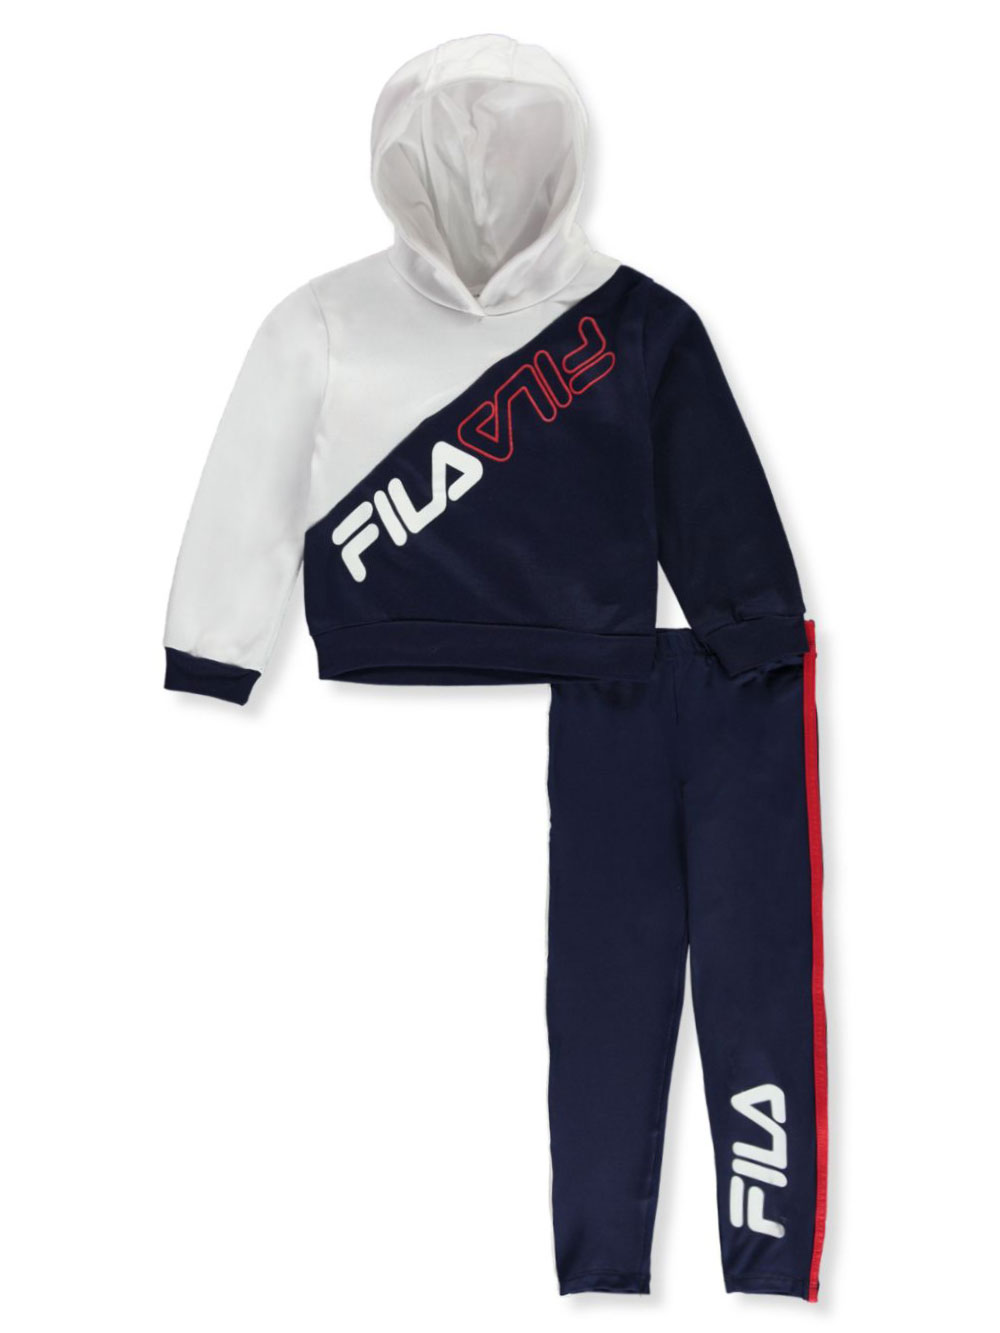 Angled Split Block 2 Piece Leggings Set Outfit by Fila in White